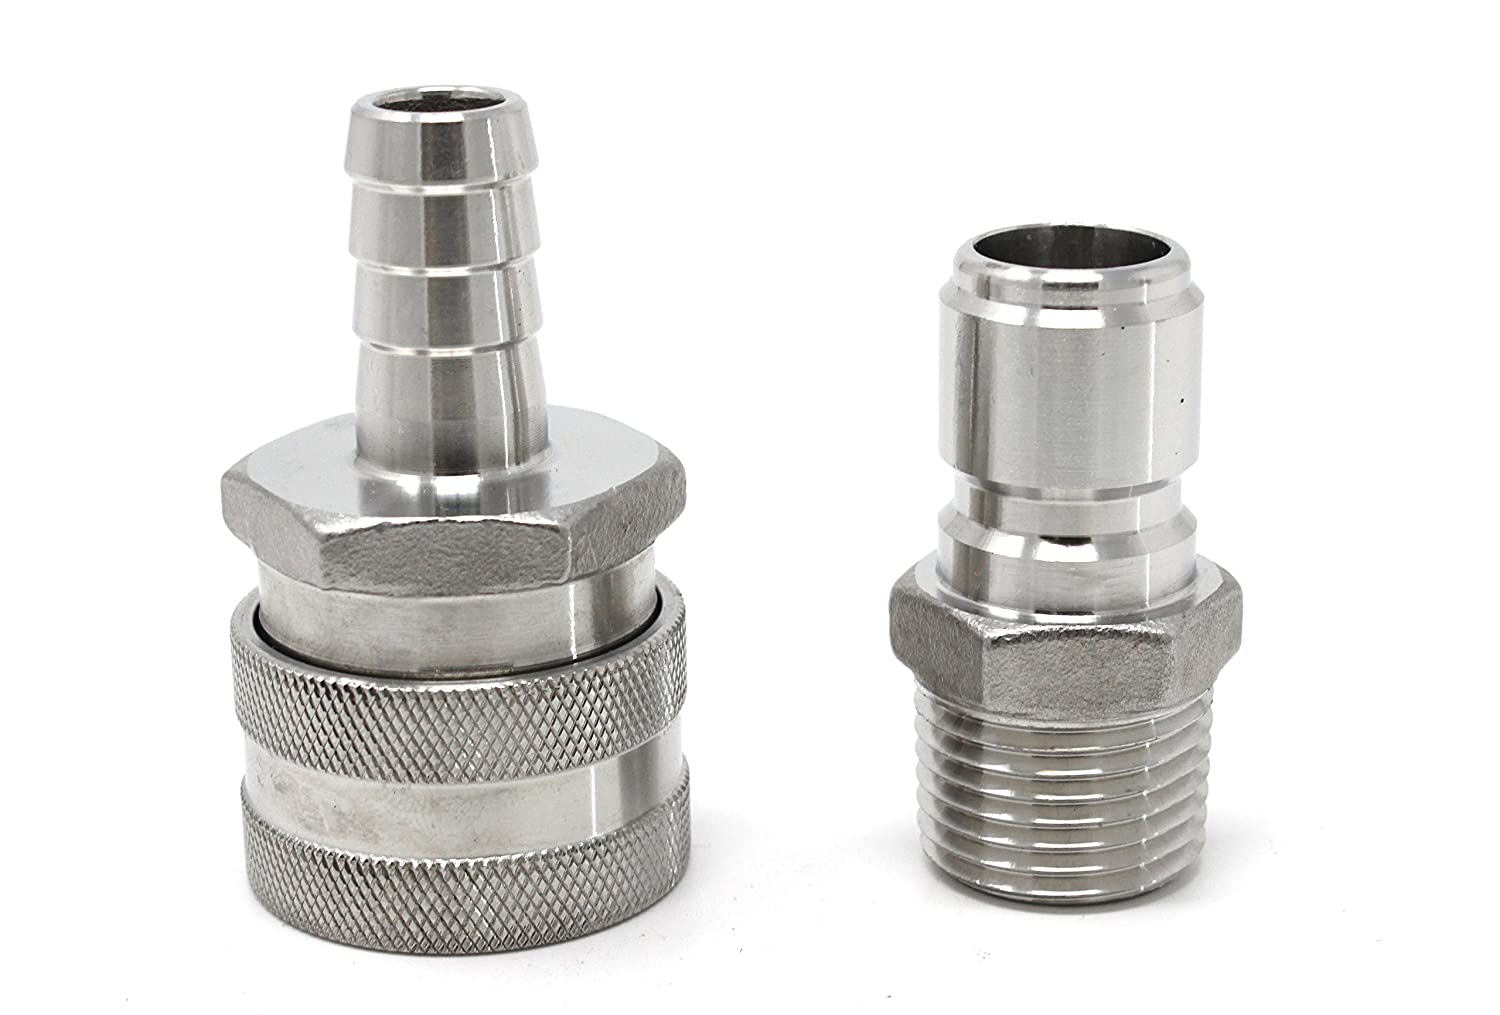 CONCORD 304 Stainless Steel Quick Disconnect Barb Hose with MPT Set. Home Brewing Mash Tun. (Barb Female/FPT Male)